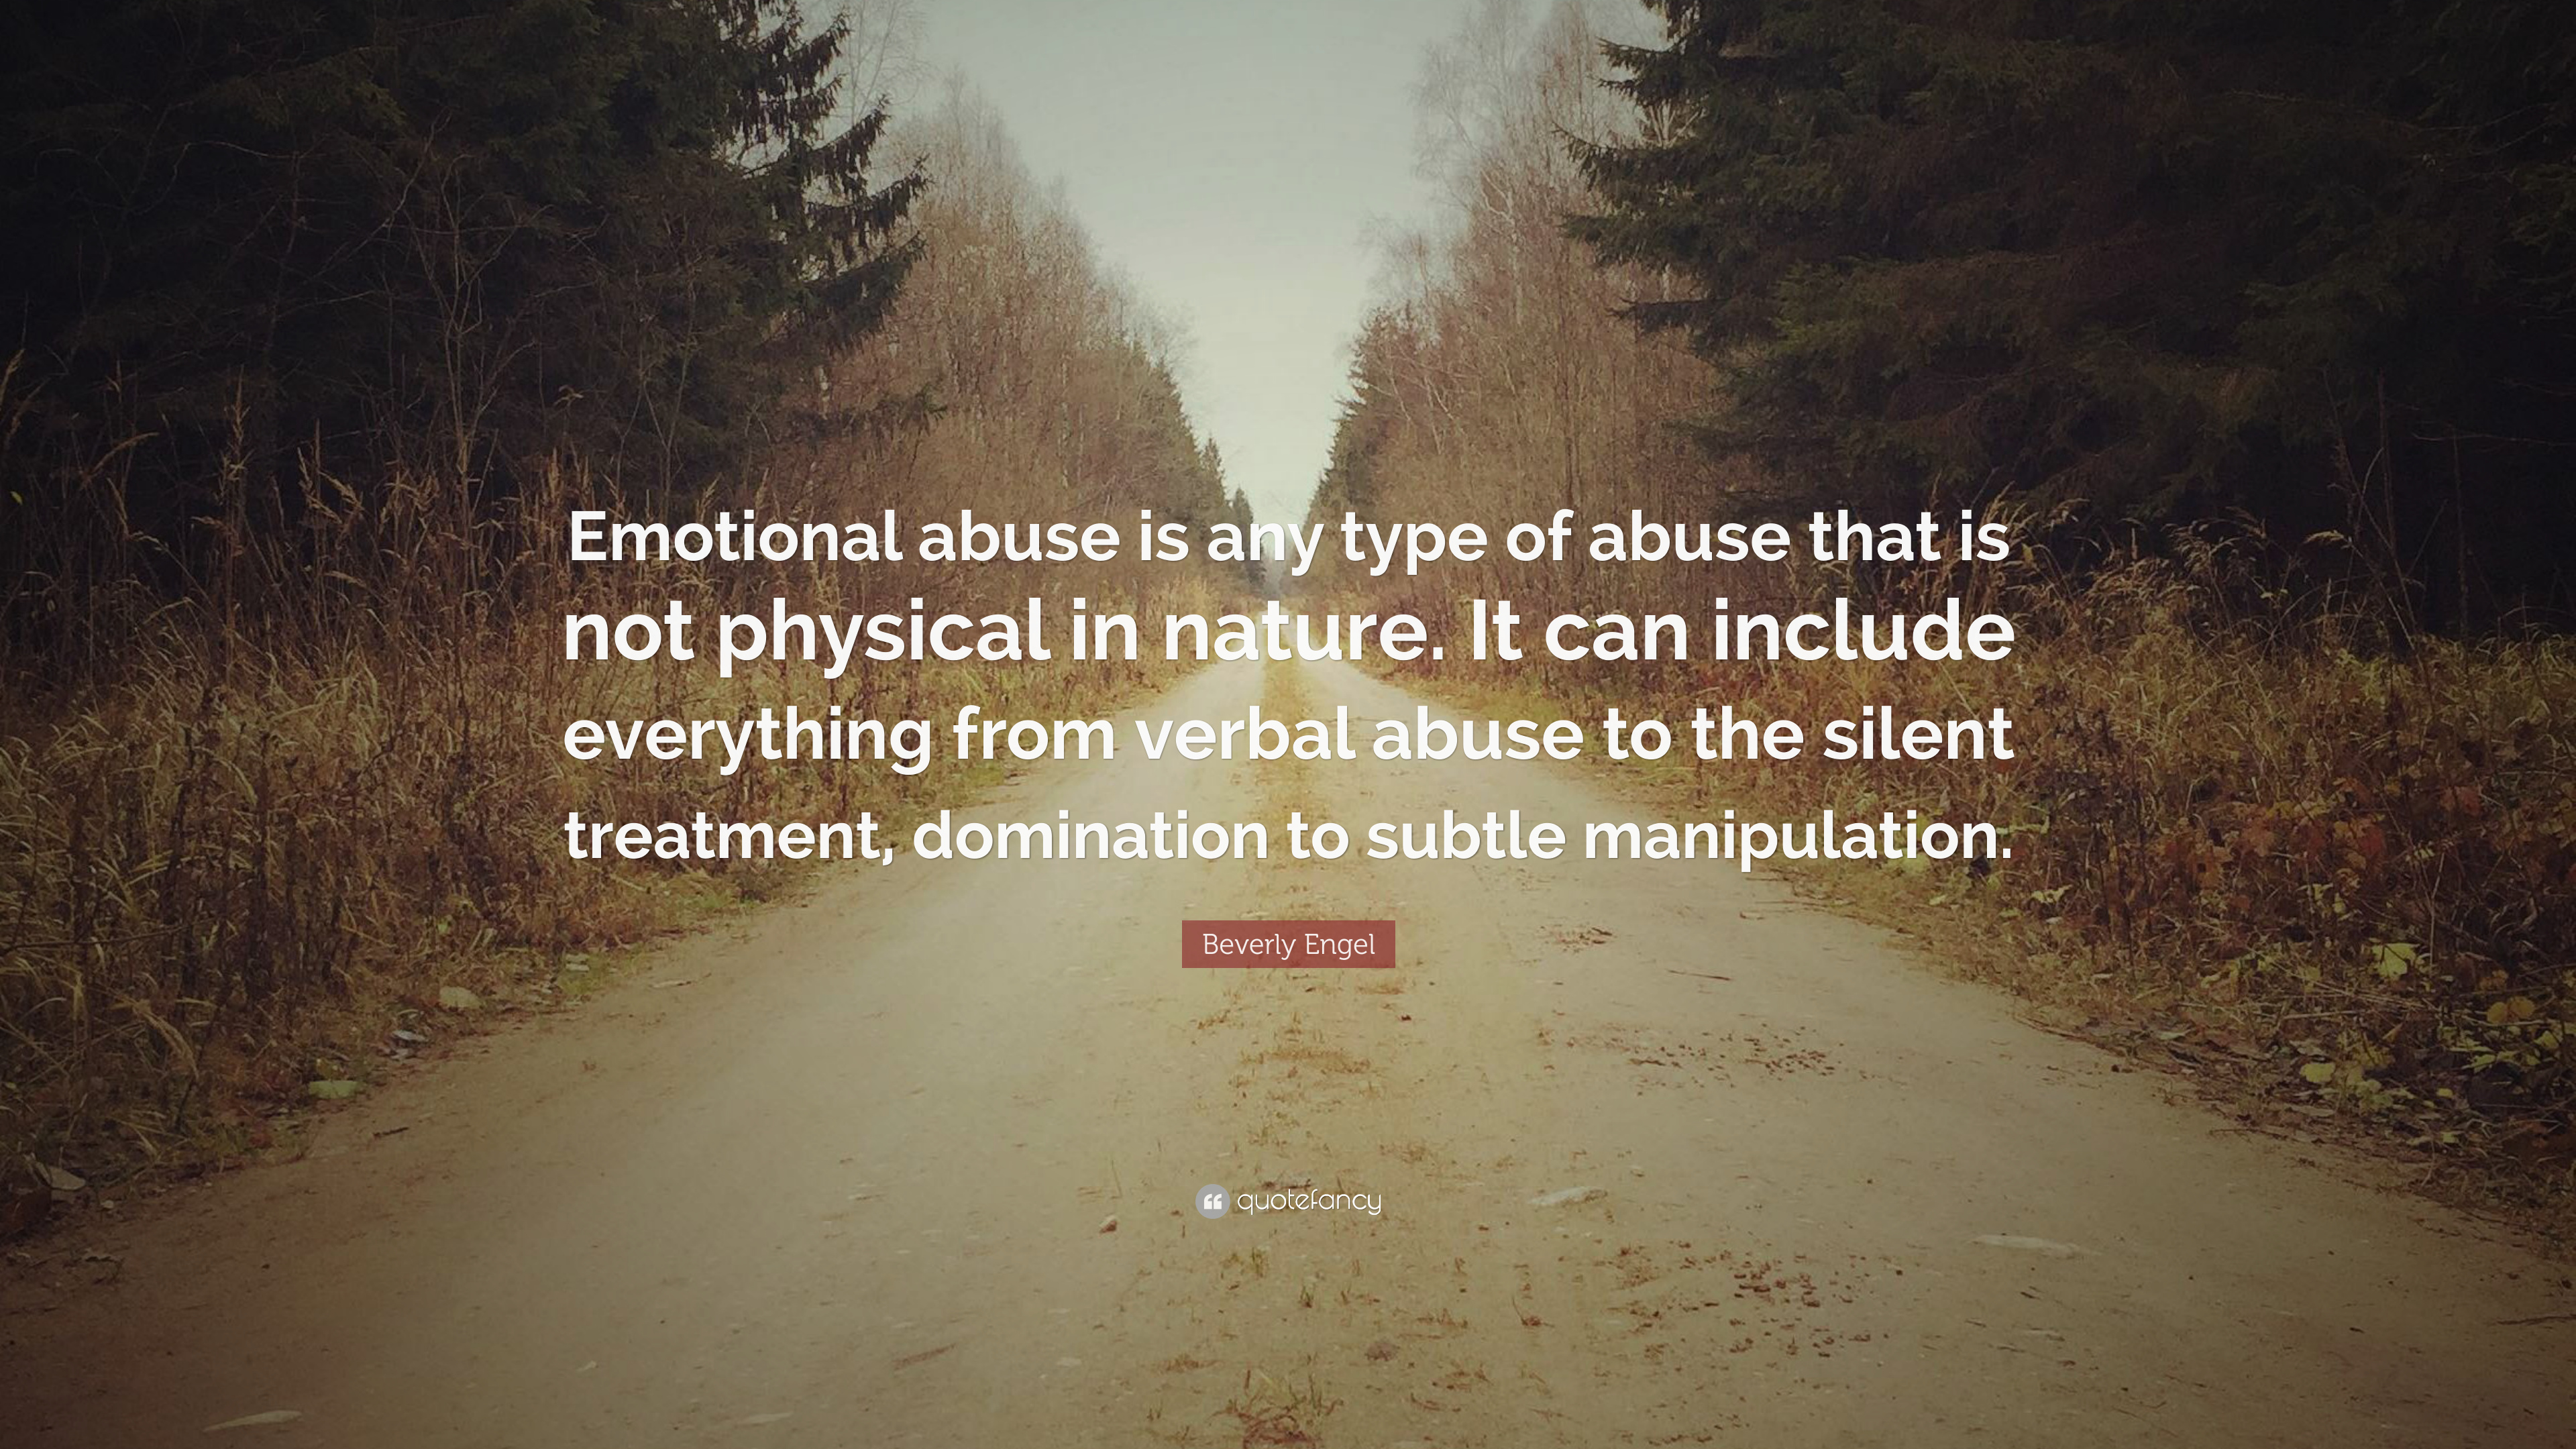 Emotional Abuse Quotes Images | Beverly Engel Quote Emotional Abuse Is Any Type Of Abuse That Is